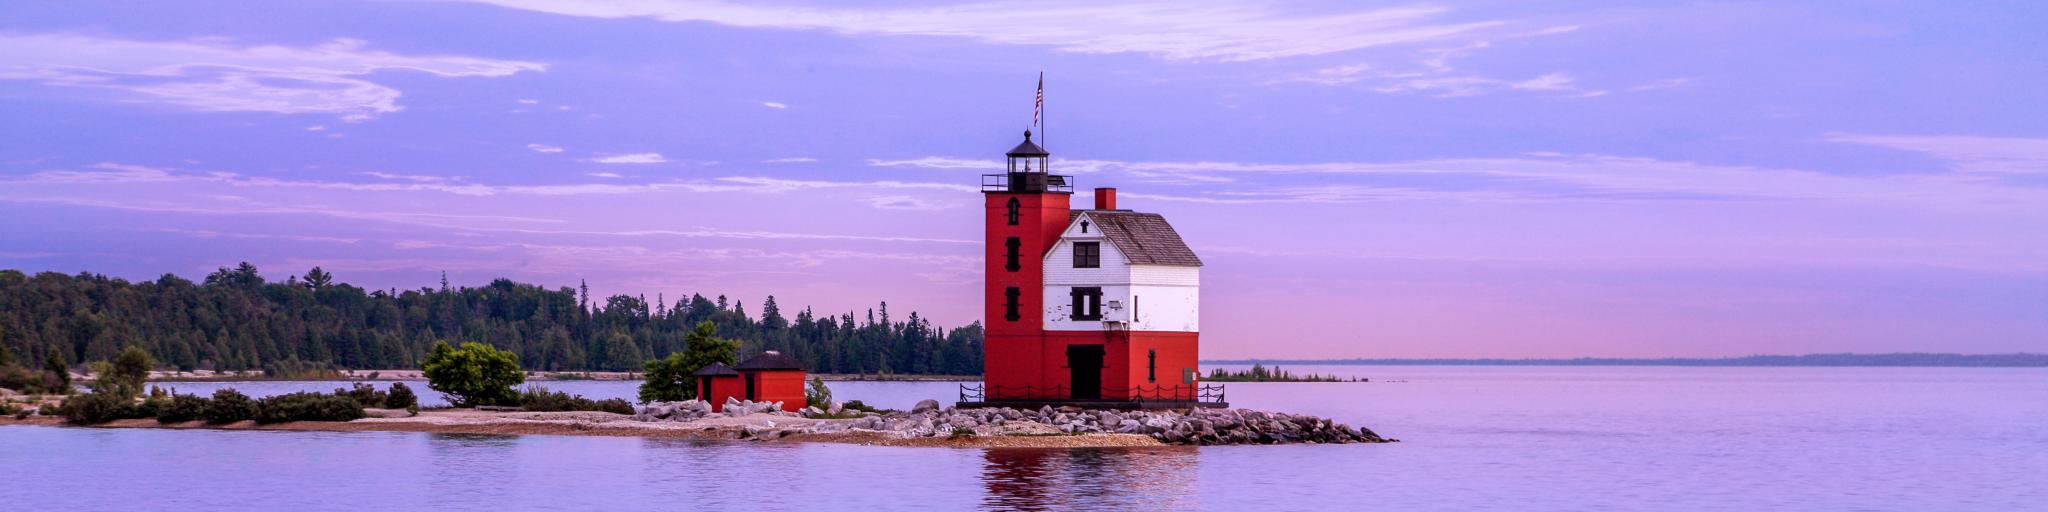 The historic Round Island Lighthouse at the shore of Mackinac Island in a purple and blue sky after sunset with a view of green pine trees at the distance